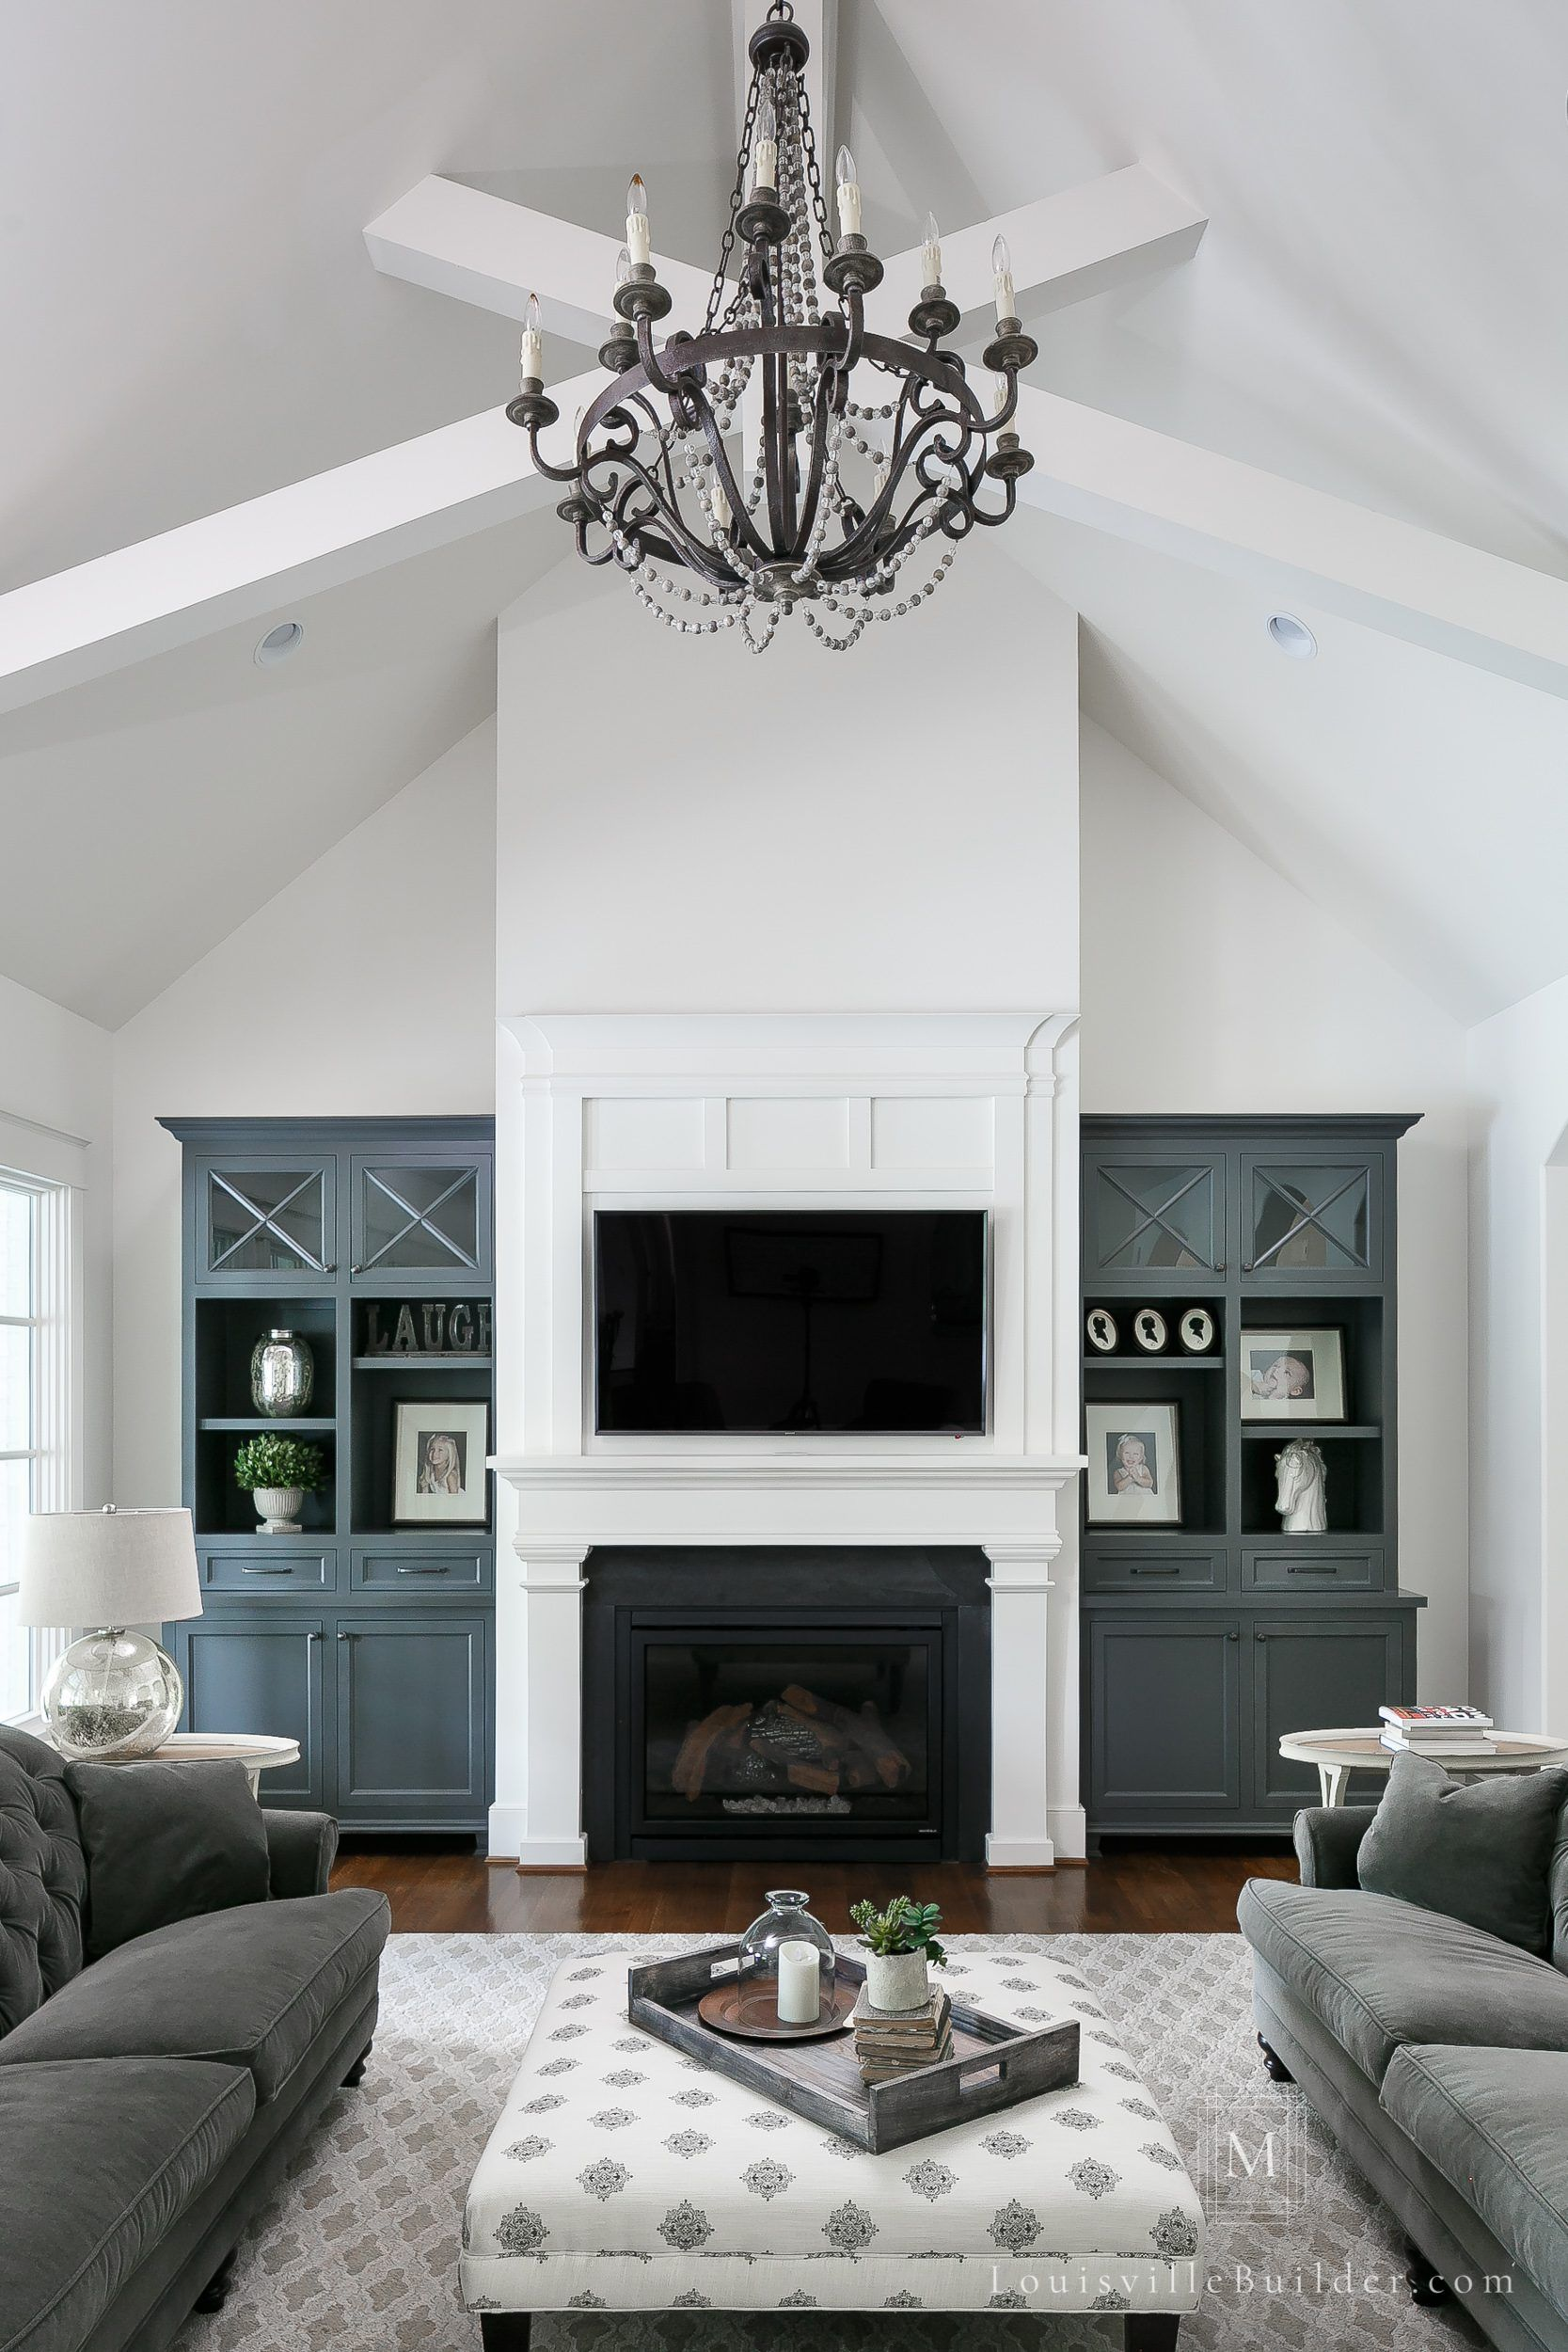 Meridian construction poplar ridge also best living room images in rh pinterest